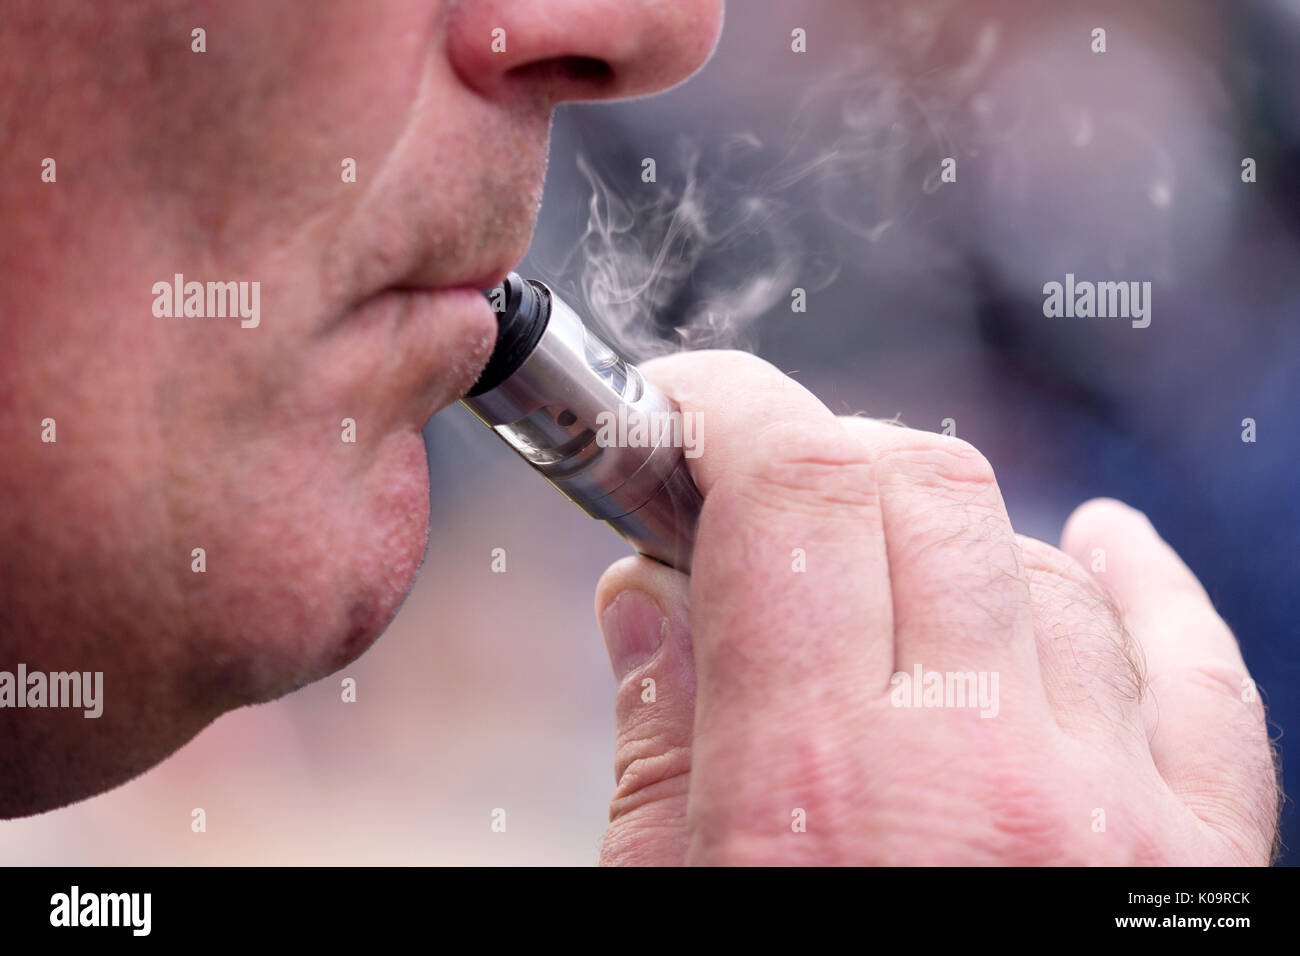 Man using an e-cigarette - Stock Image